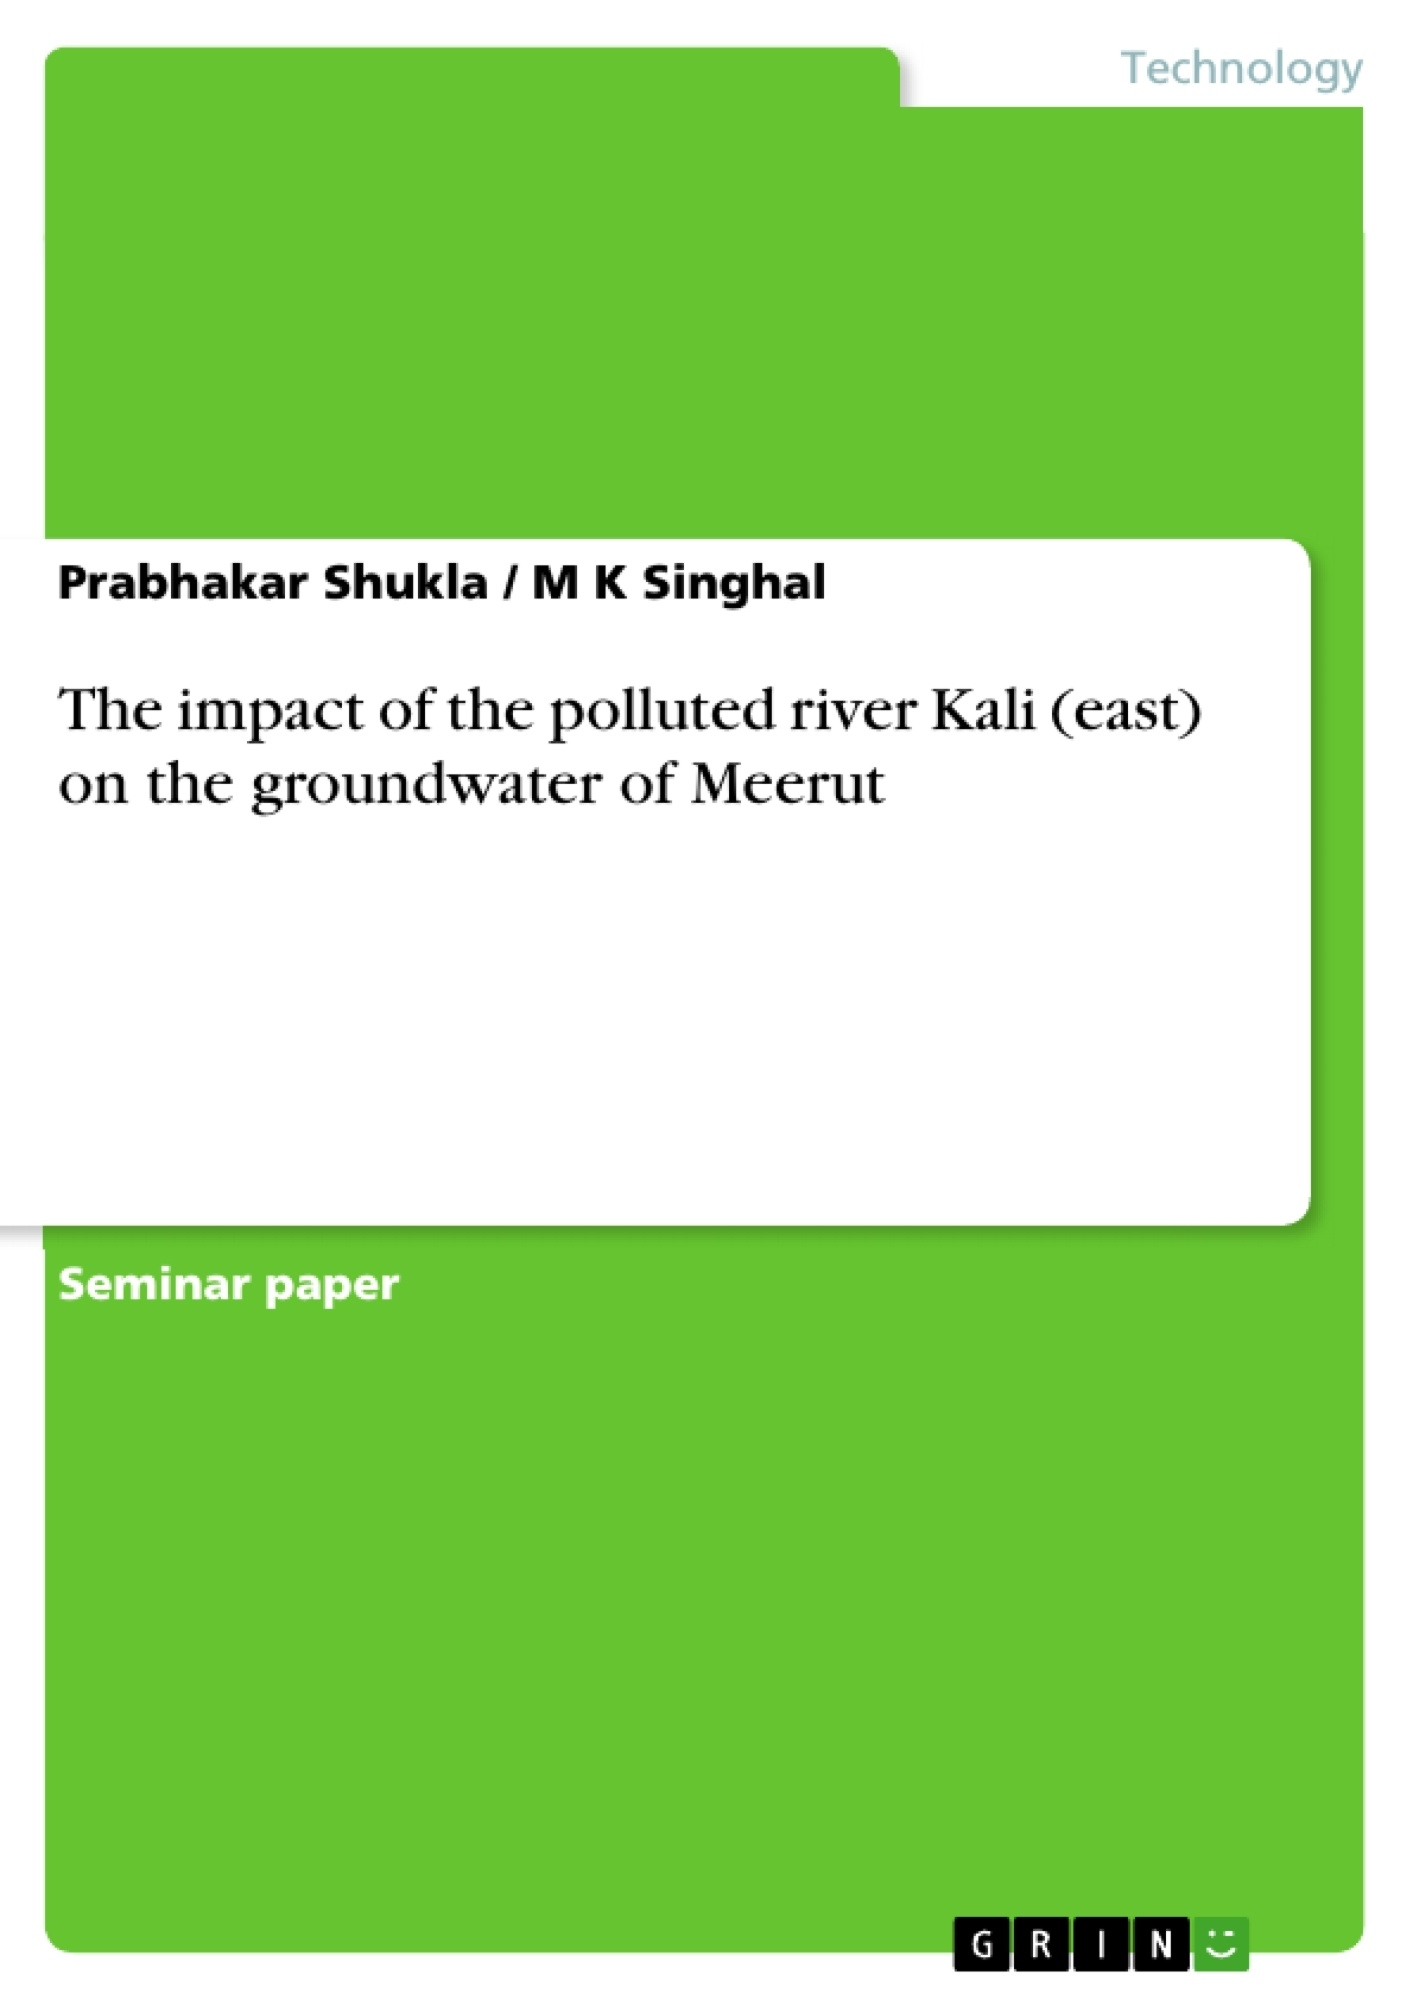 Title: The impact of the polluted river Kali (east) on the groundwater of Meerut